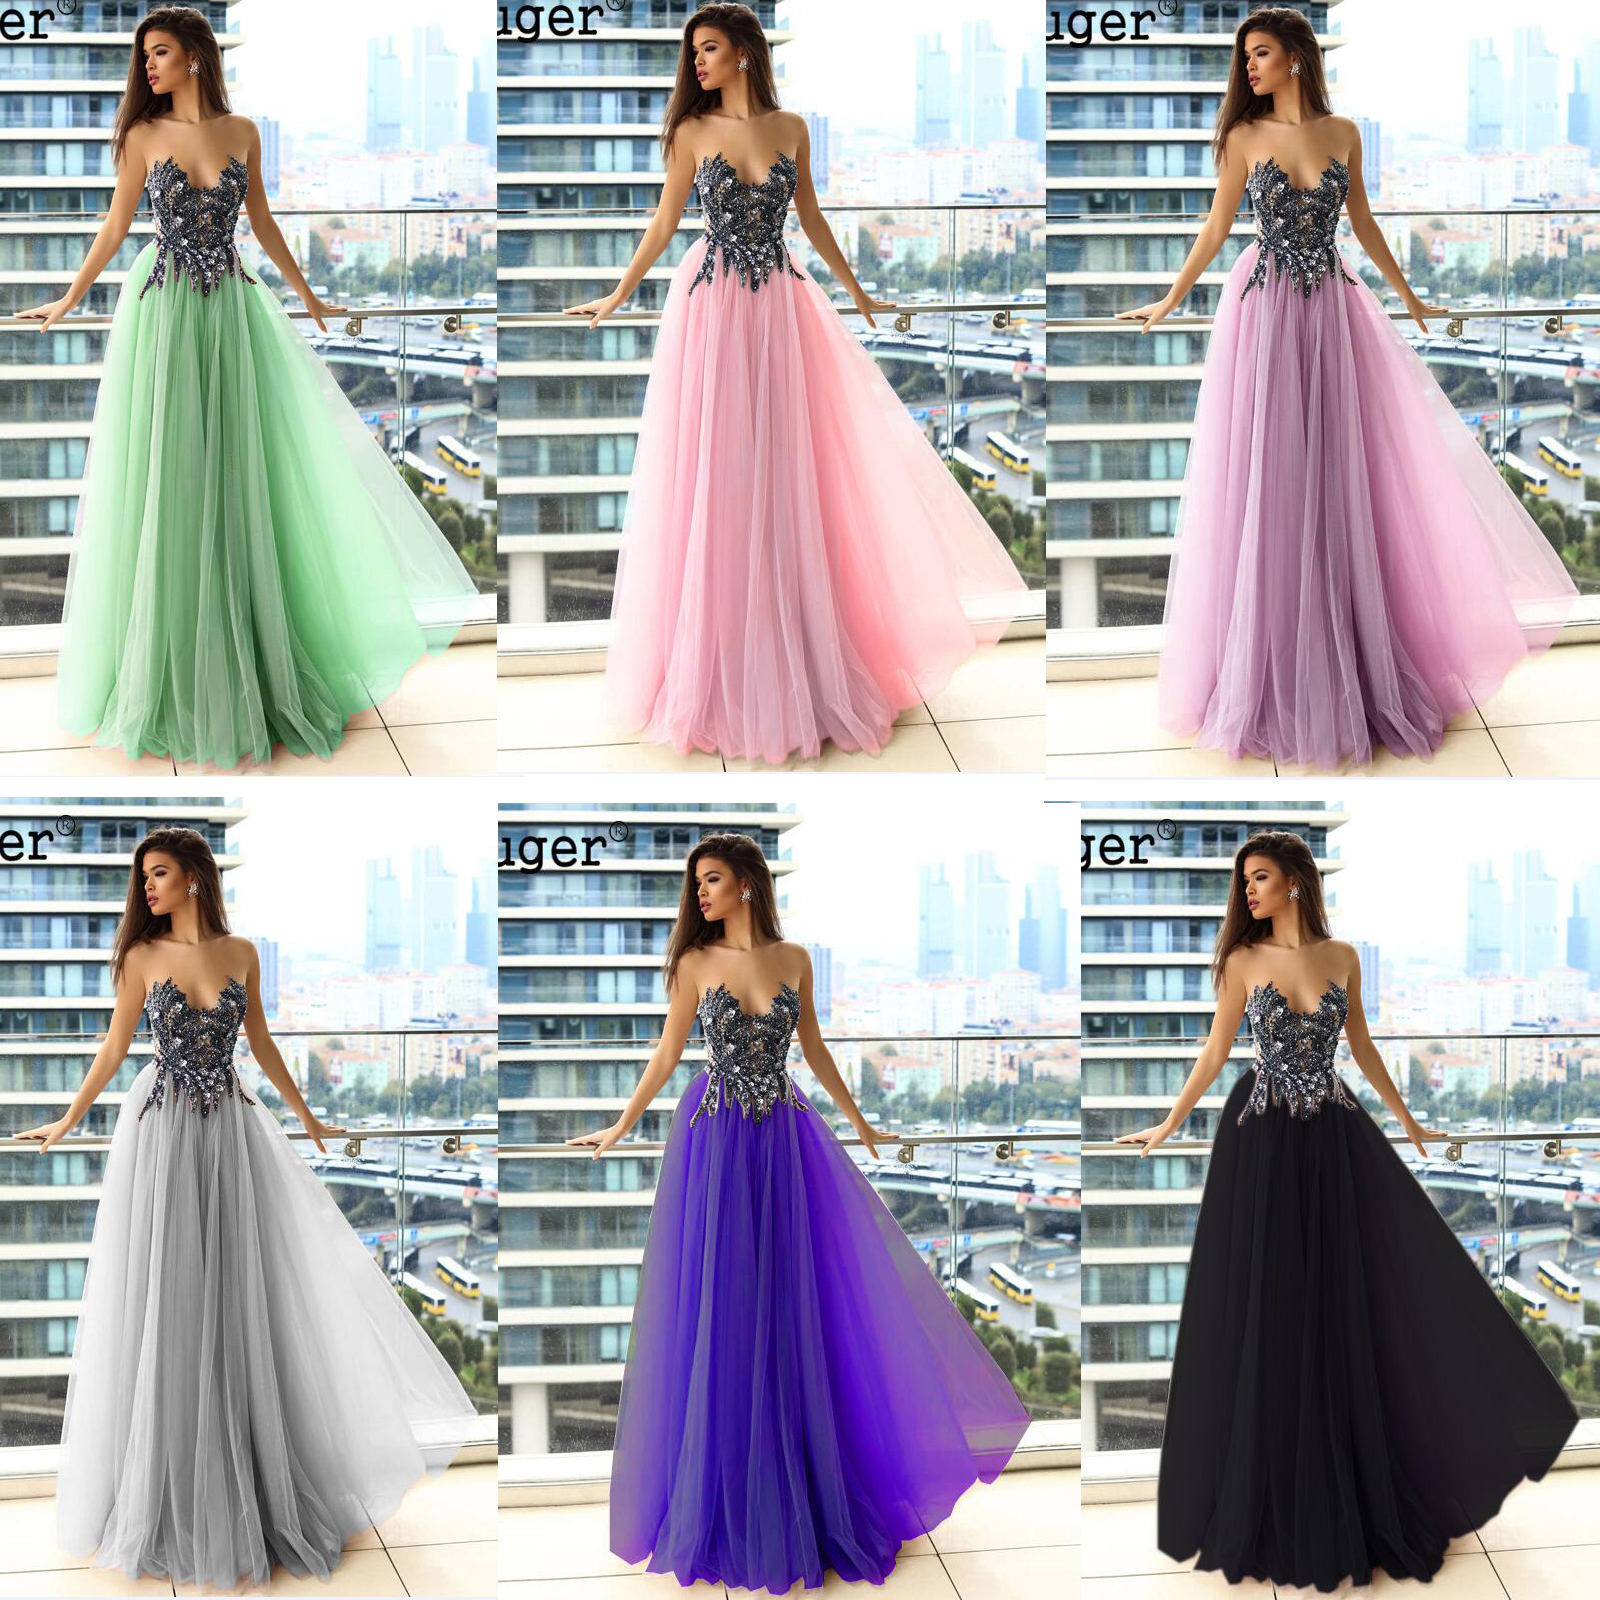 Lilac Button Illusion Back Beadings Pleat Evening Dress Prom Vestidos De Fiesta Formal Party Dress Arabic Special Occasion